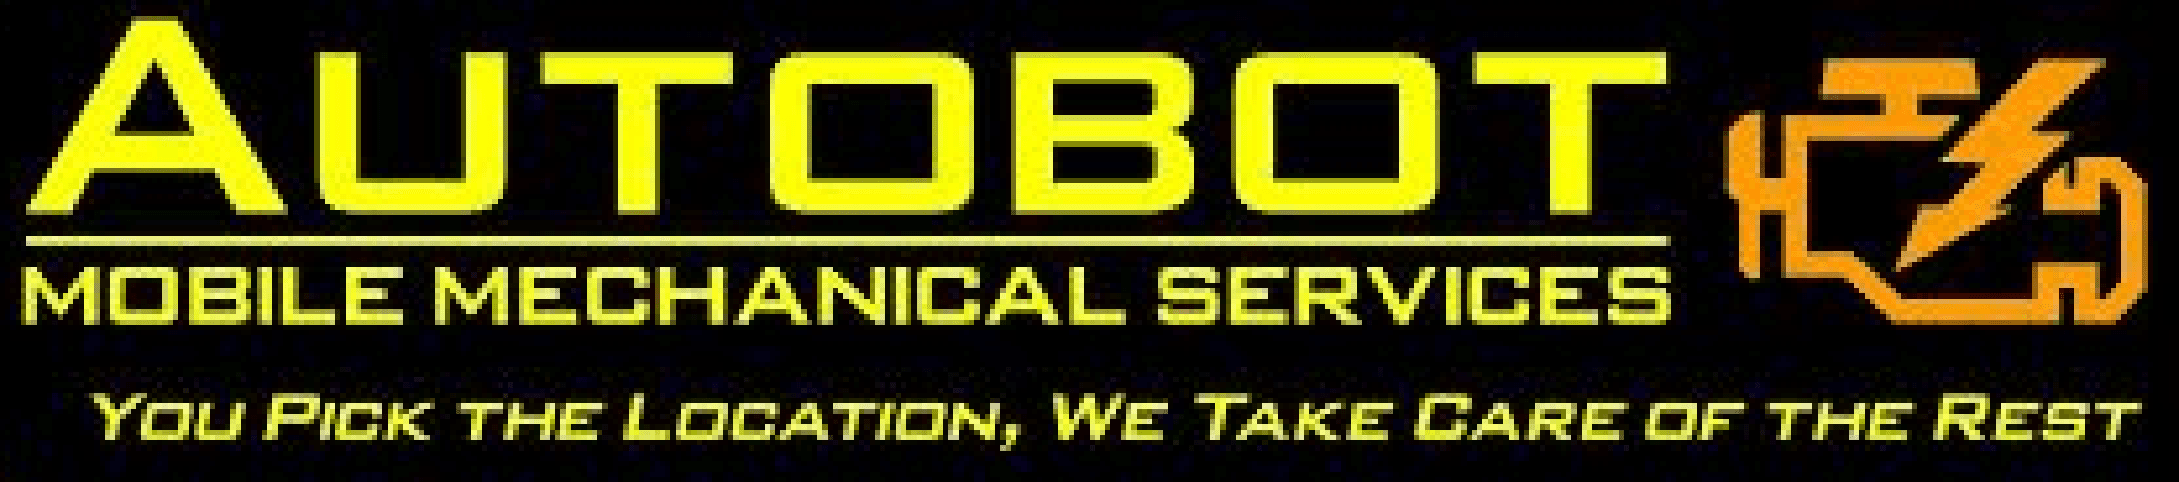 Autobot Mobile Mechanical Services logo